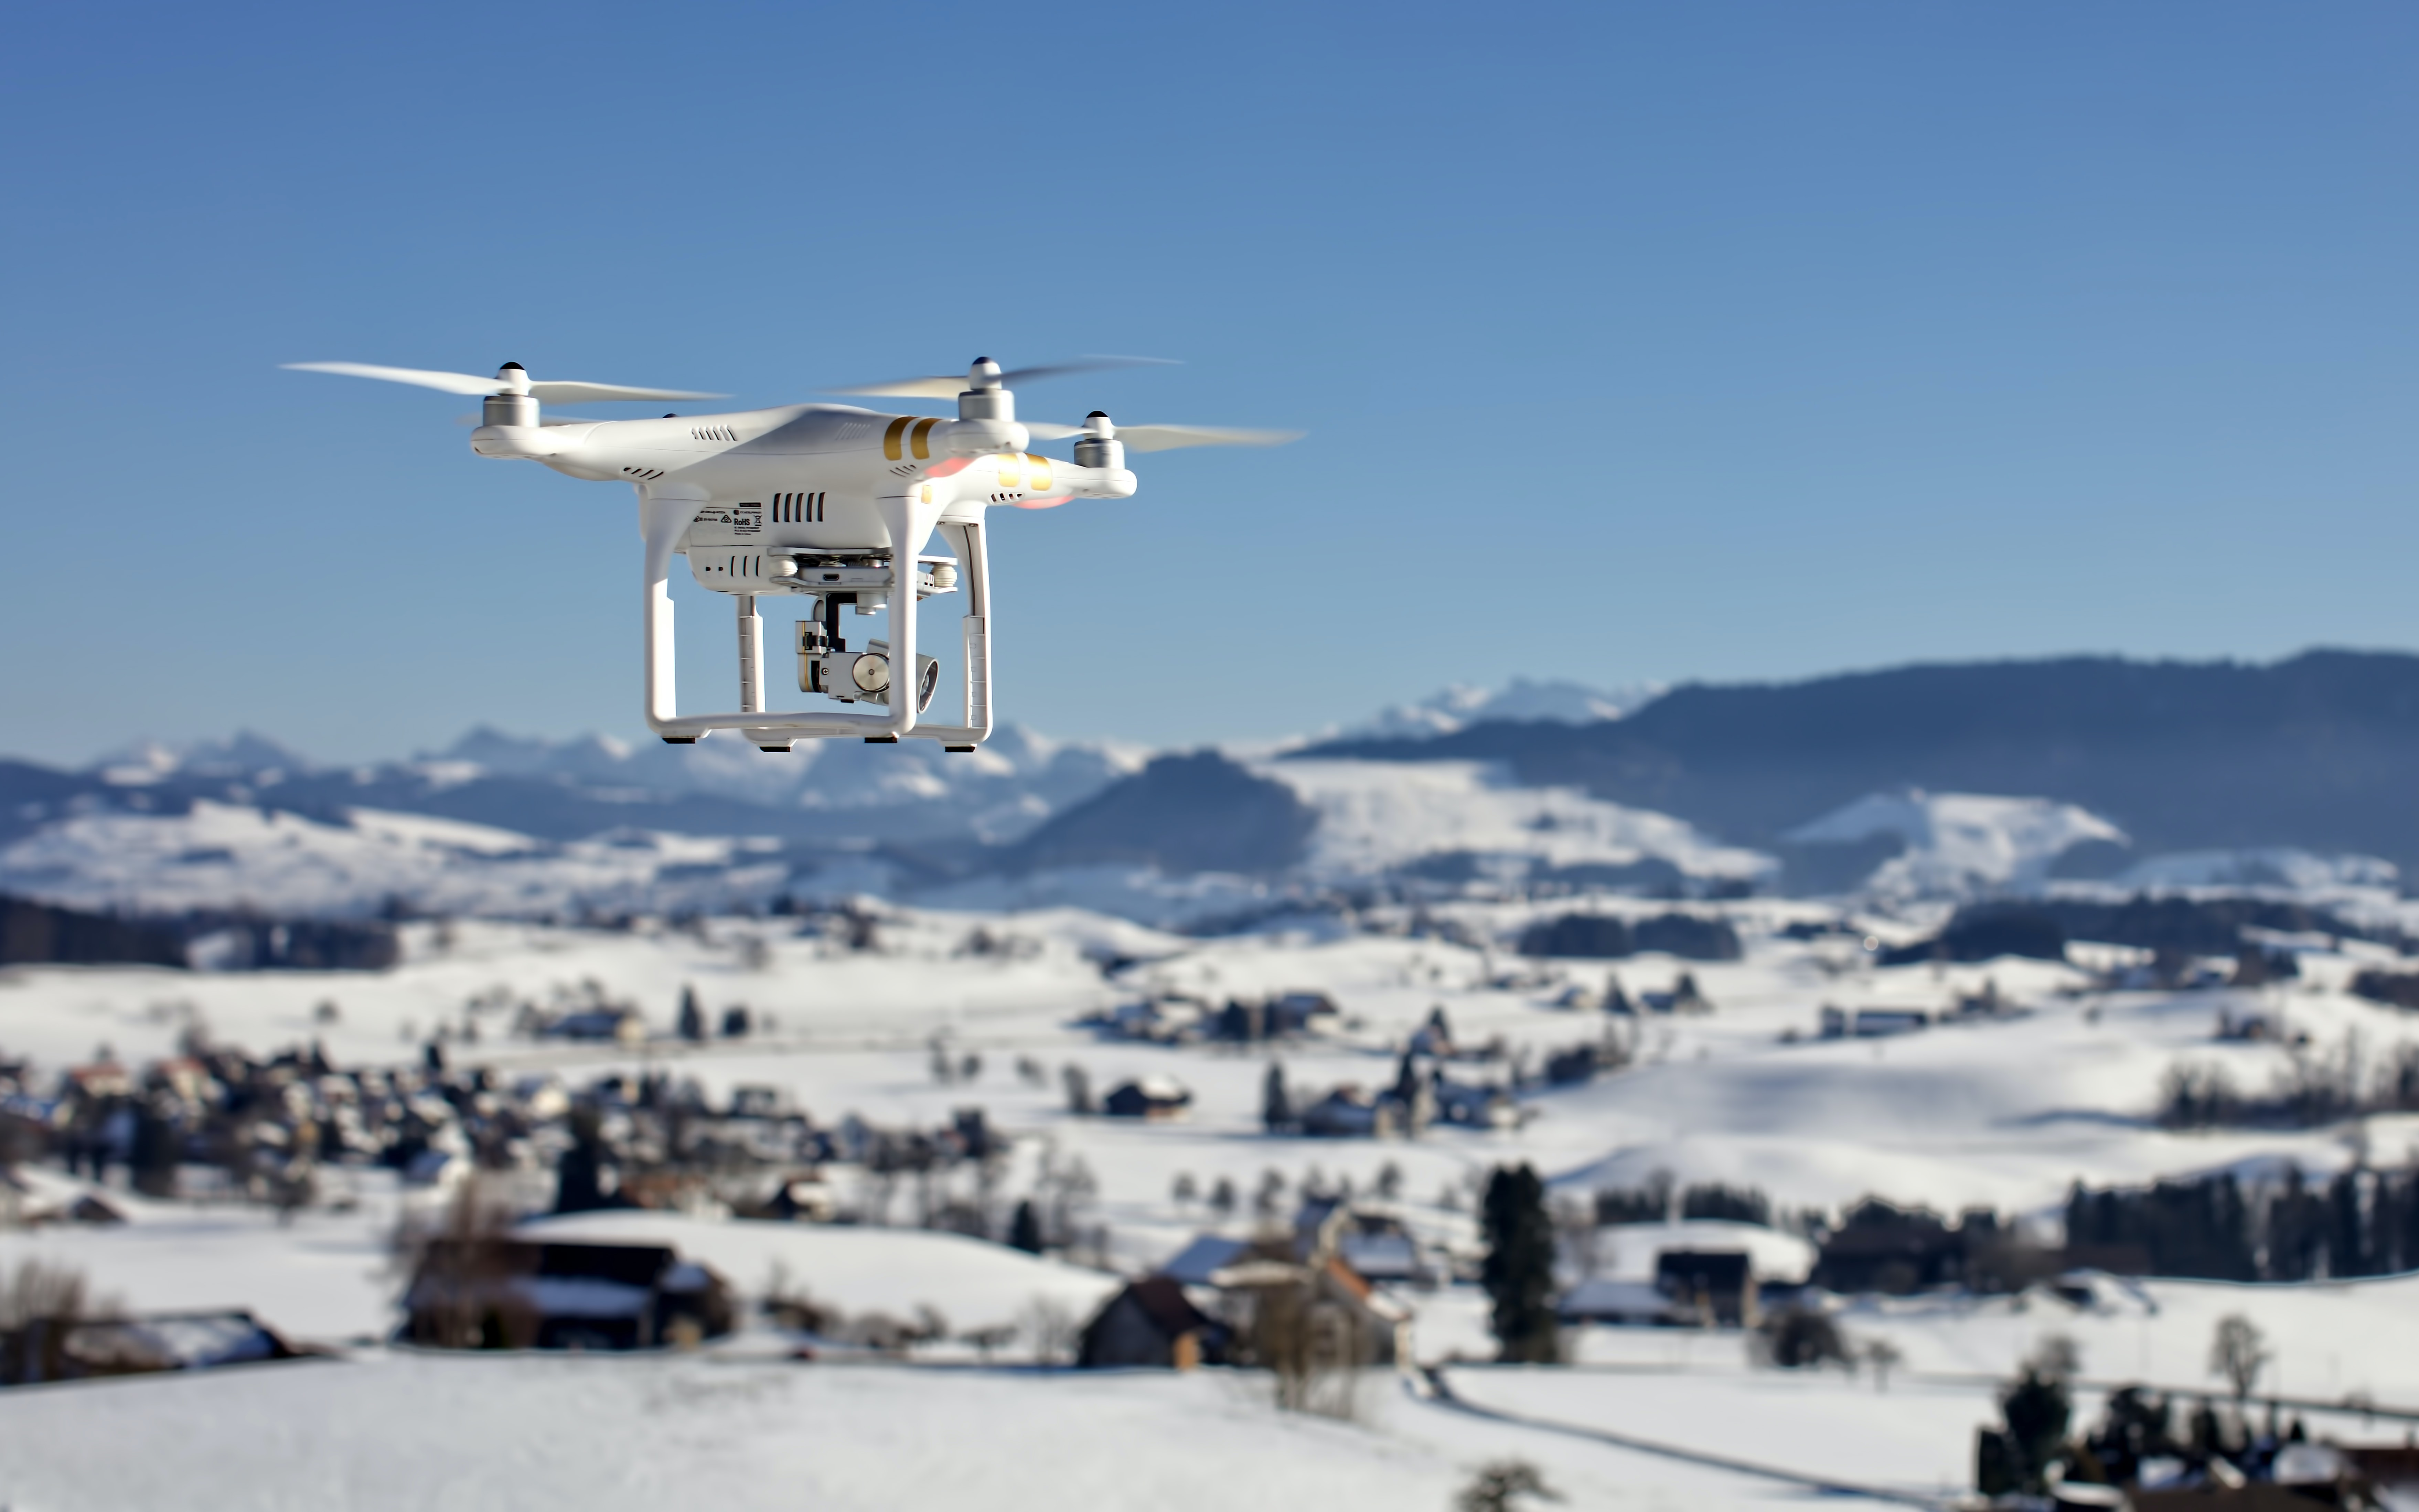 drone over snow covered houses